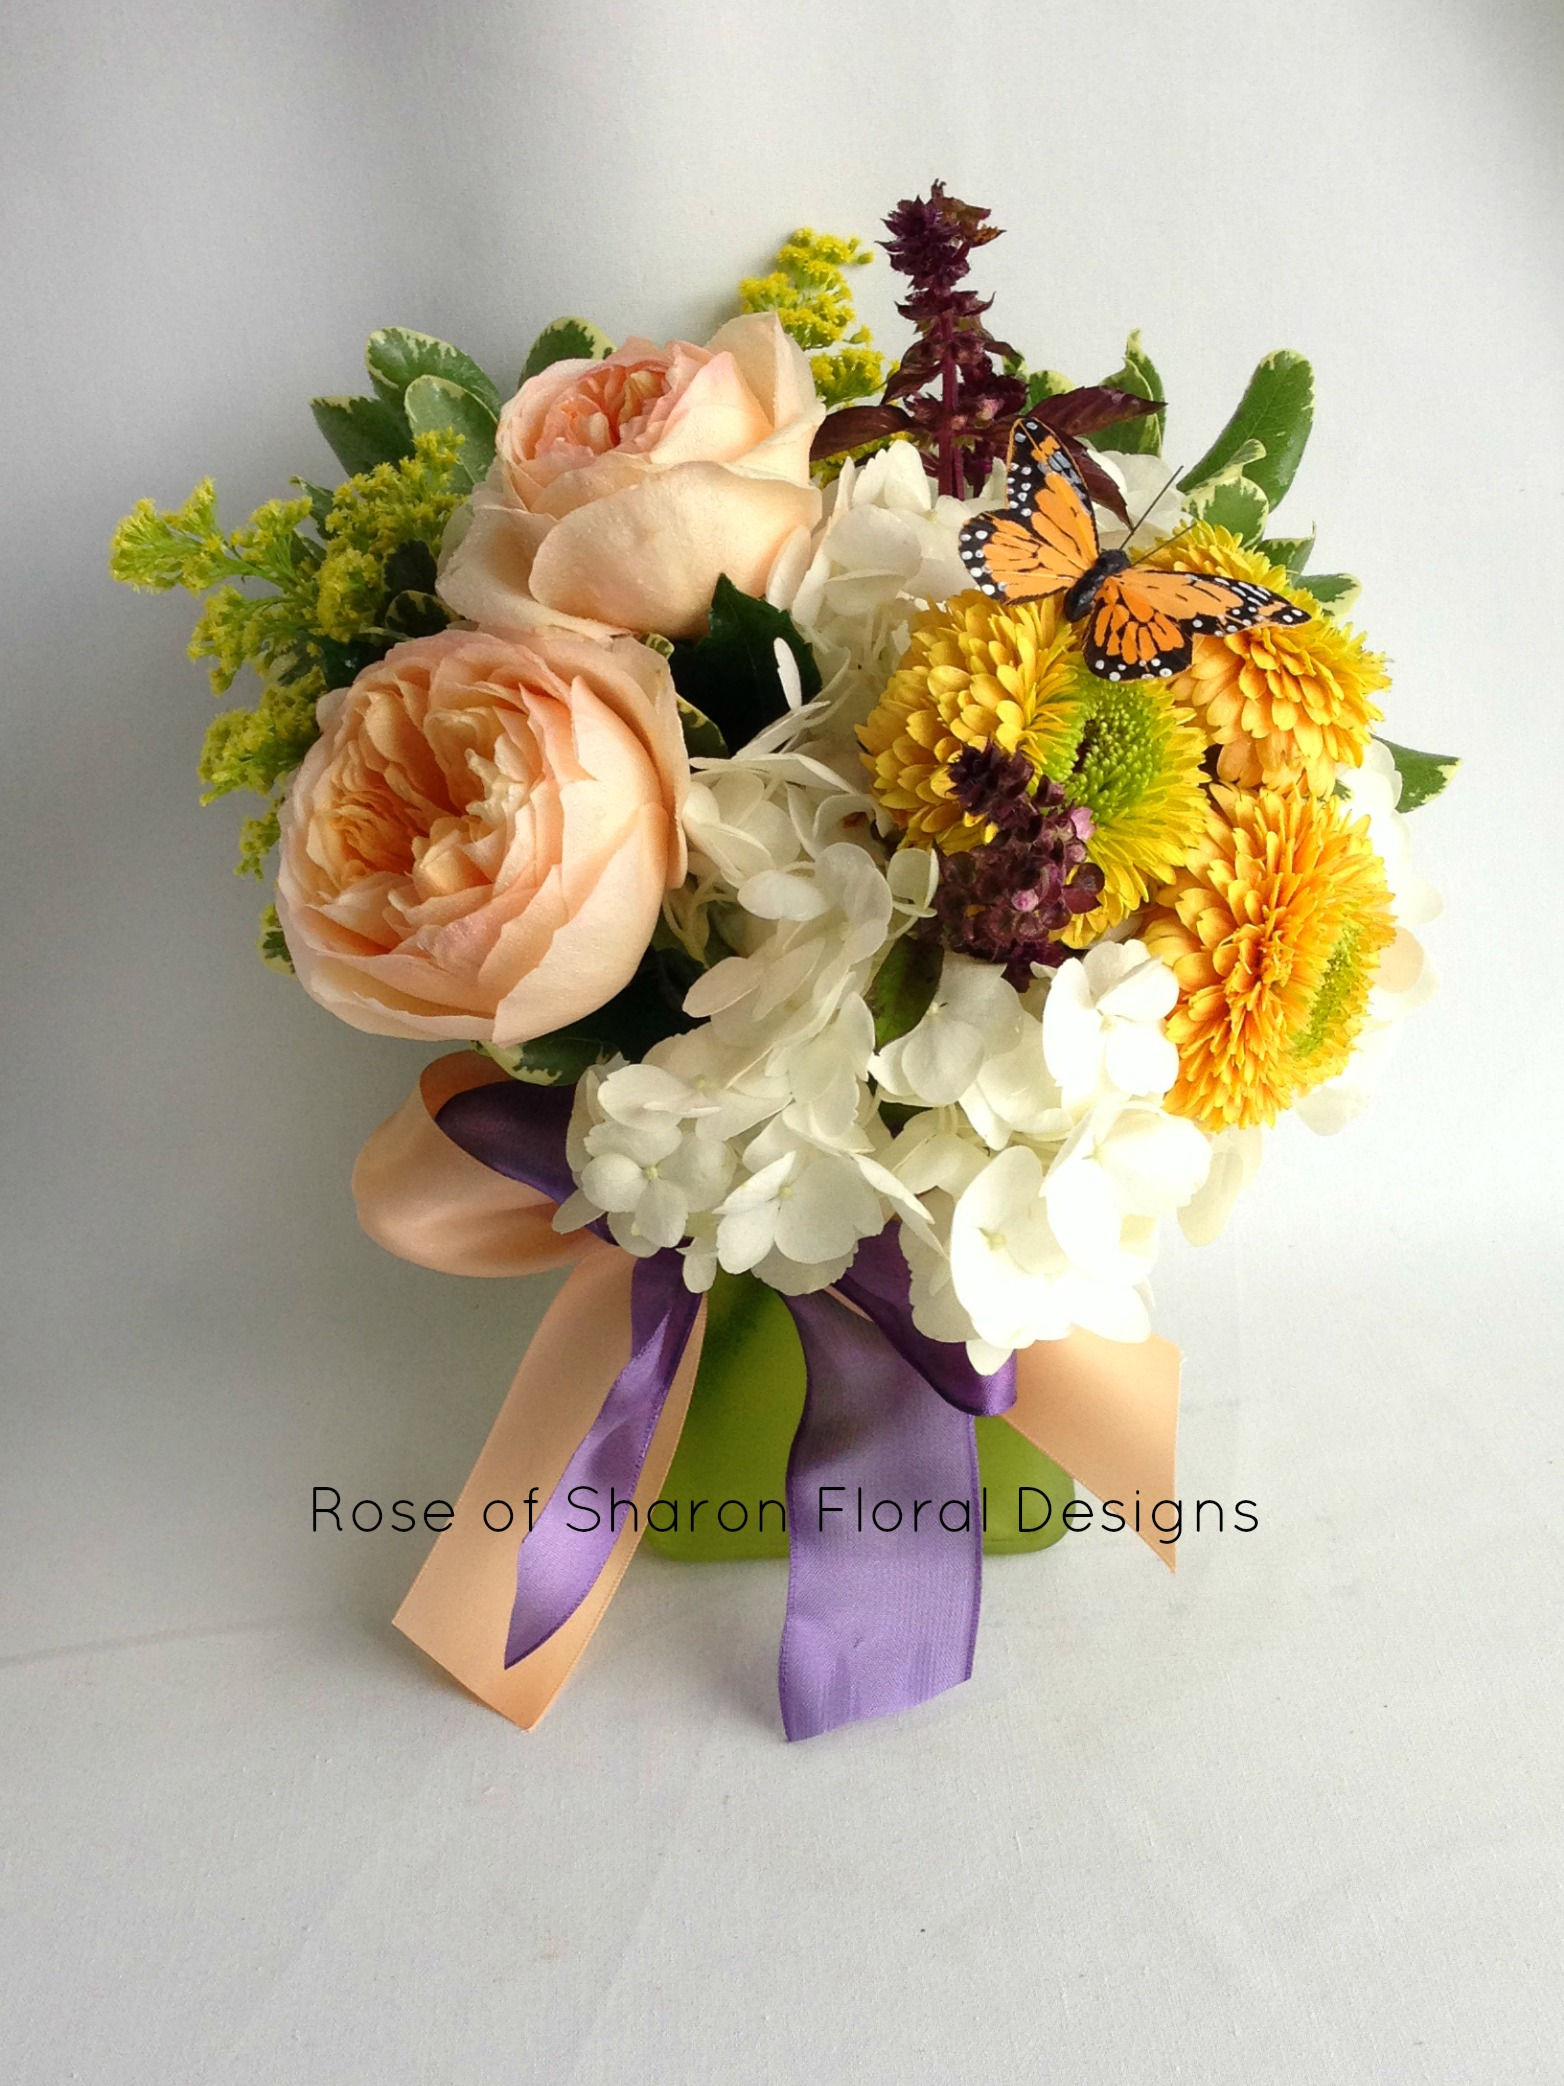 Hydrangeas, Garden Roses and Mums, Rose of Sharon Floral Designs